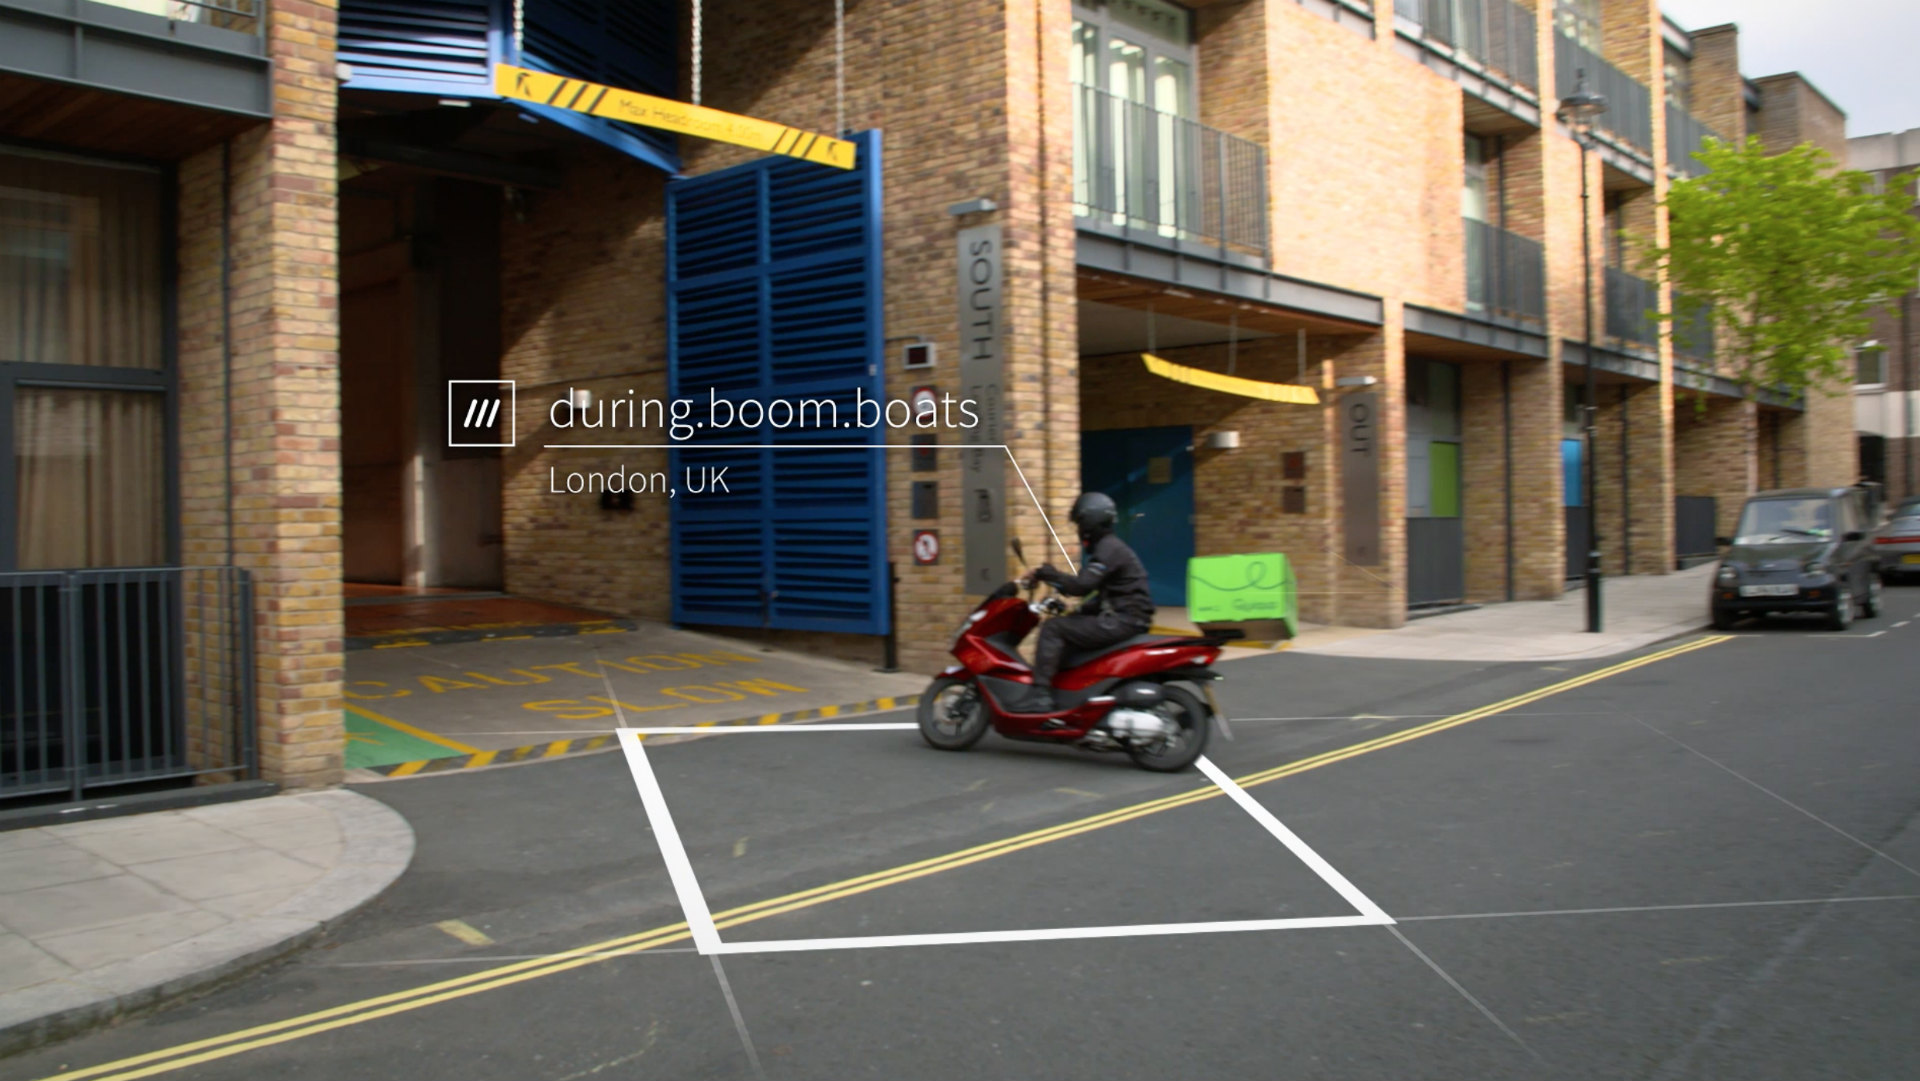 motorcyclist driving into car park at 3 words address during.boom.boats